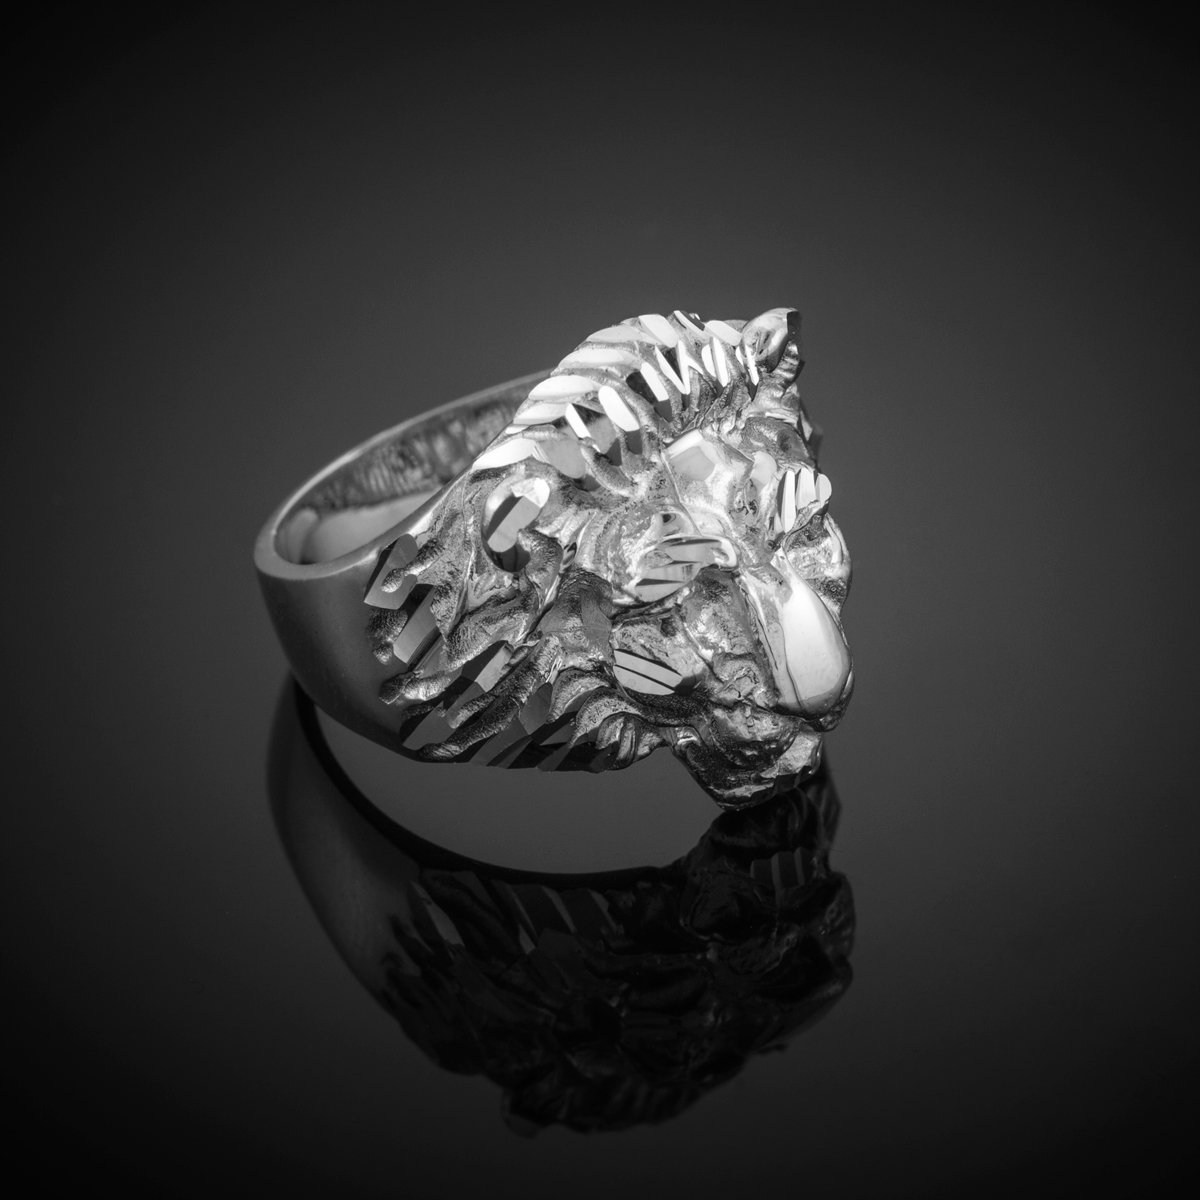 Fine 925 Sterling Silver Textured Band Lion Head Ring for Men (Size 11) by Men's Fine Jewelry (Image #2)